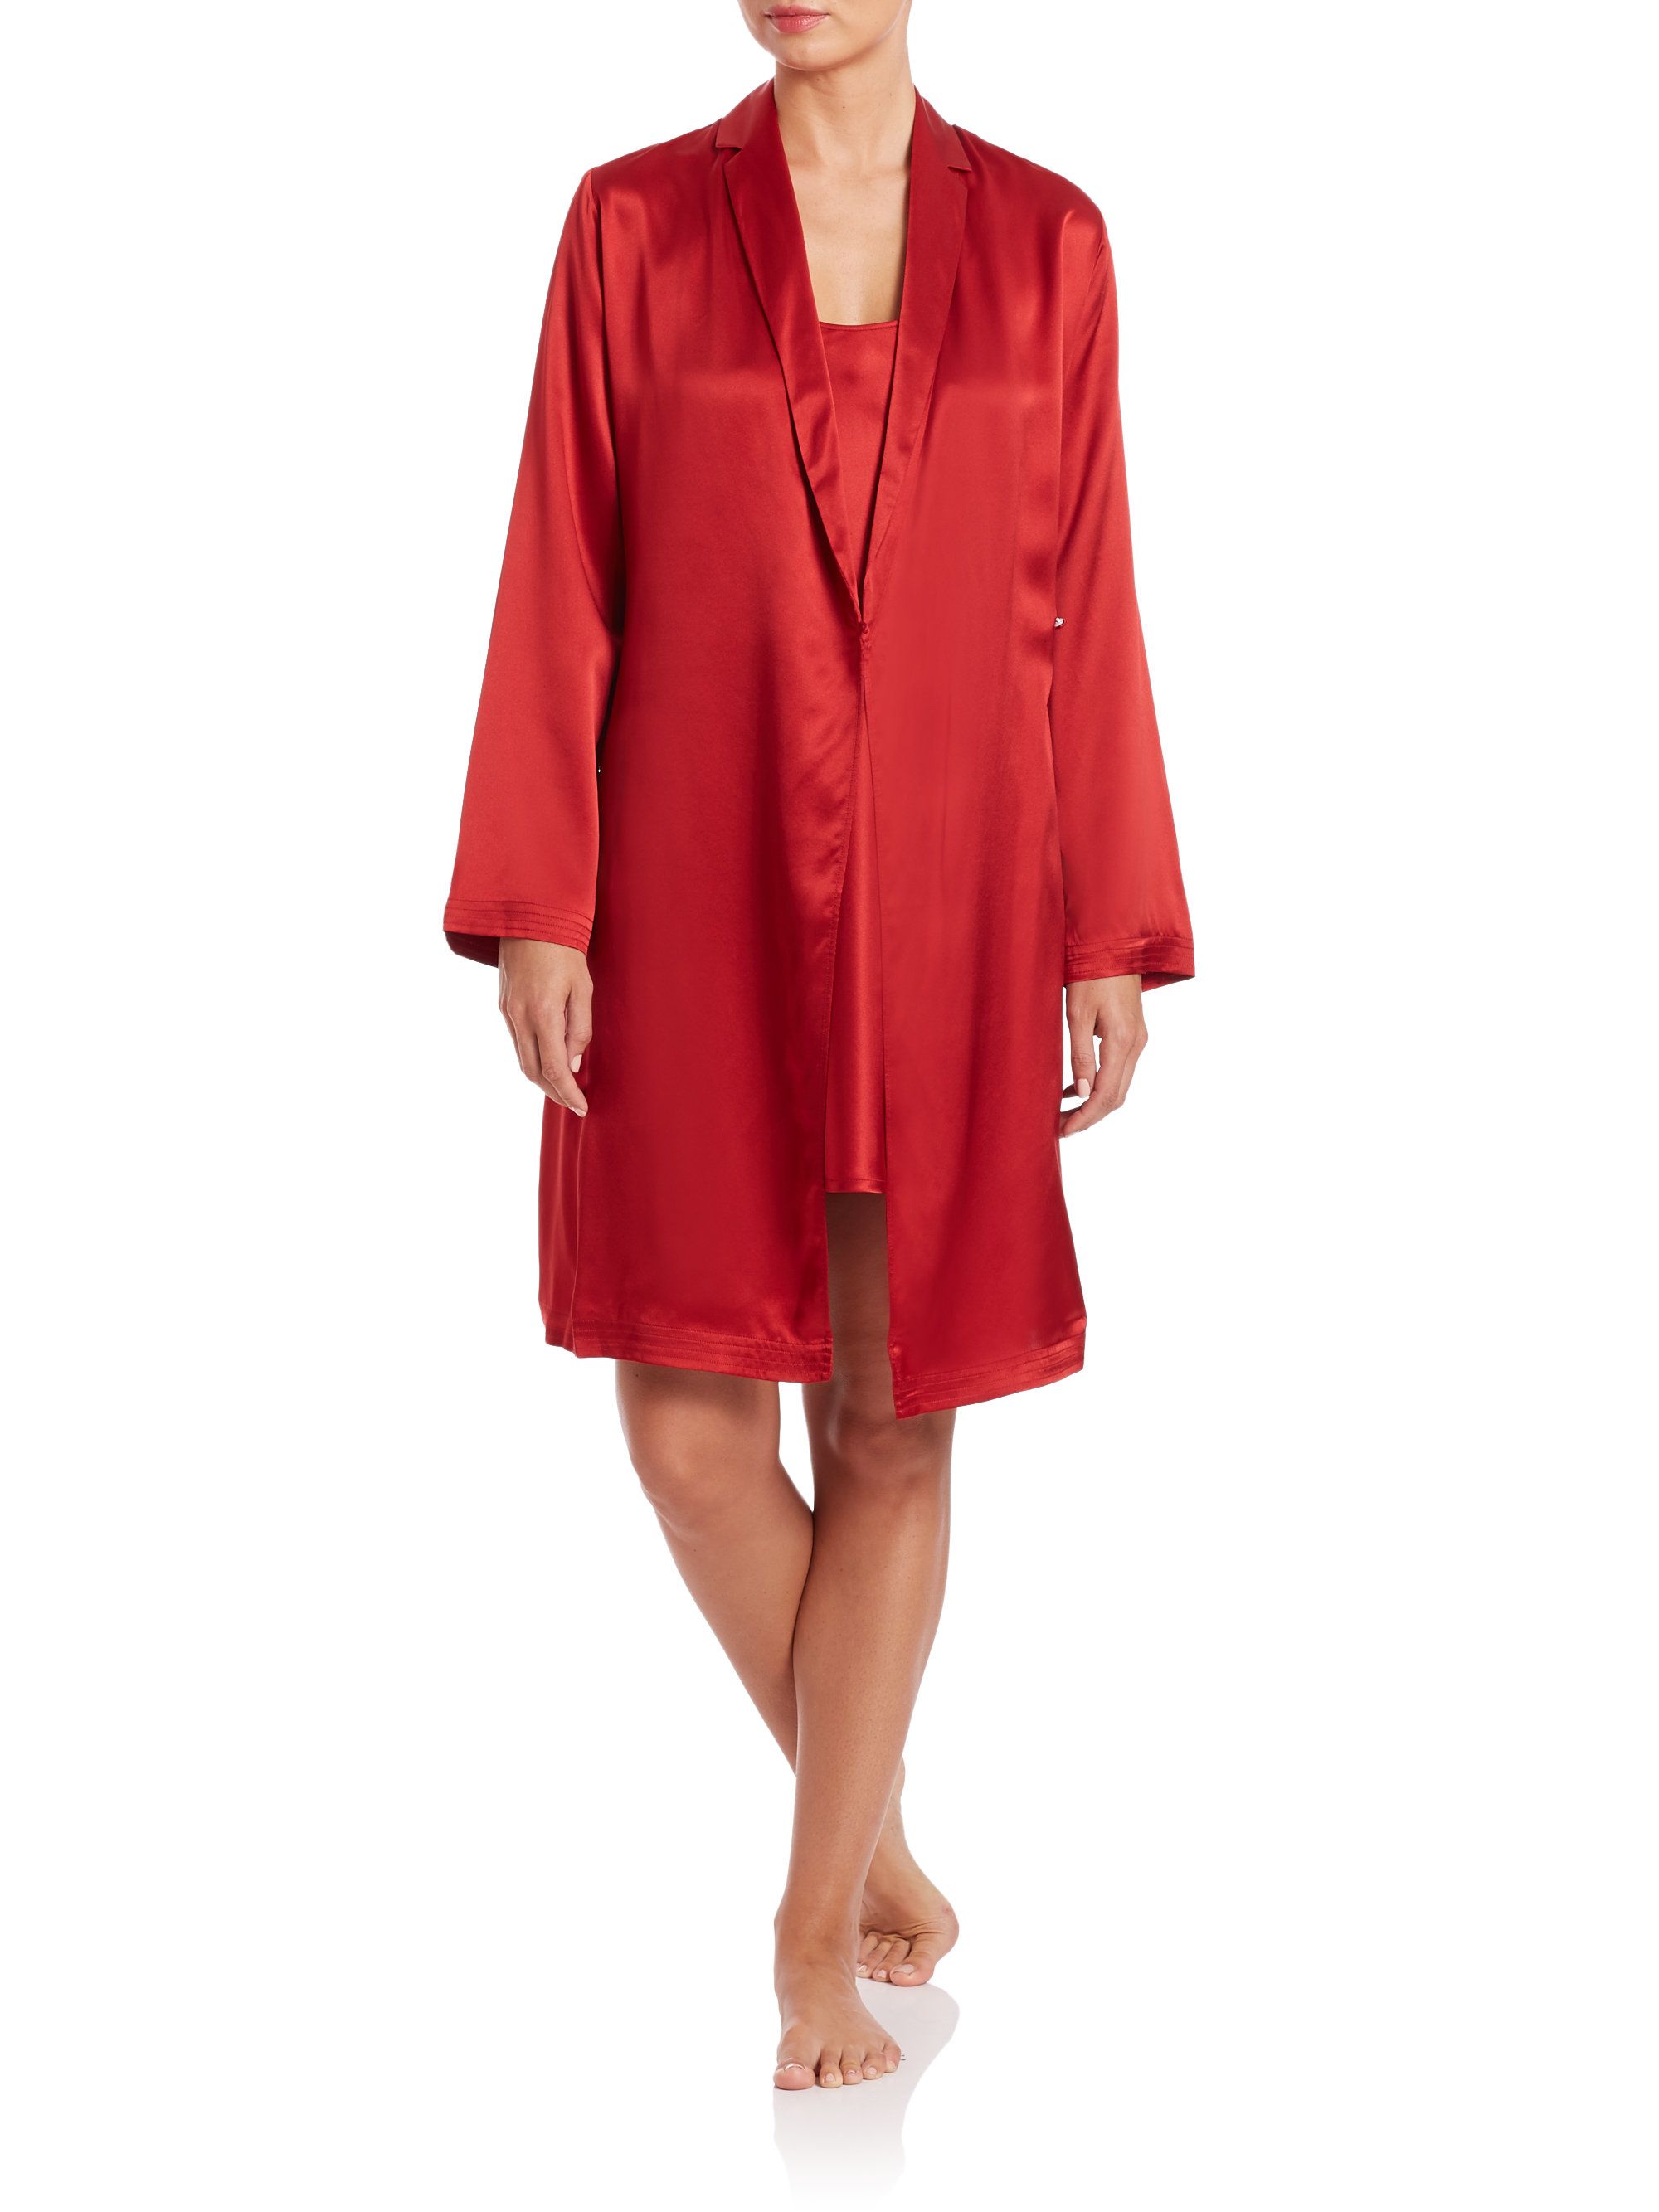 Red Satin Robes, Bridesmaid Robes, Red Wedding Robes on ... |Red Silk Robe